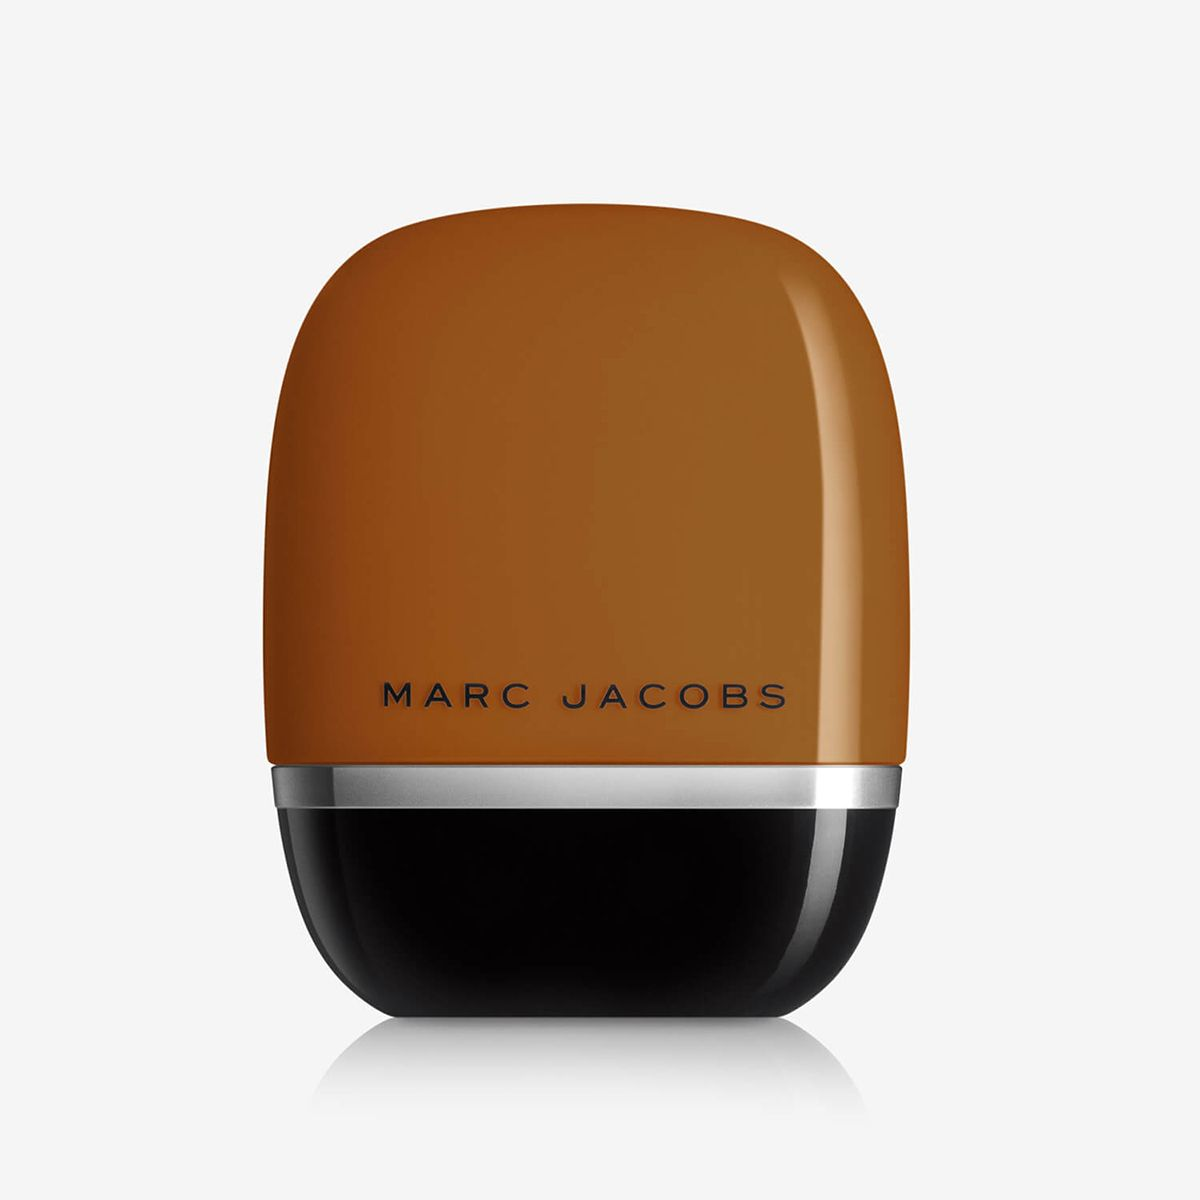 We Tested All The On-Sale Marc Jacobs Beauty Products—These Were the Standouts 3